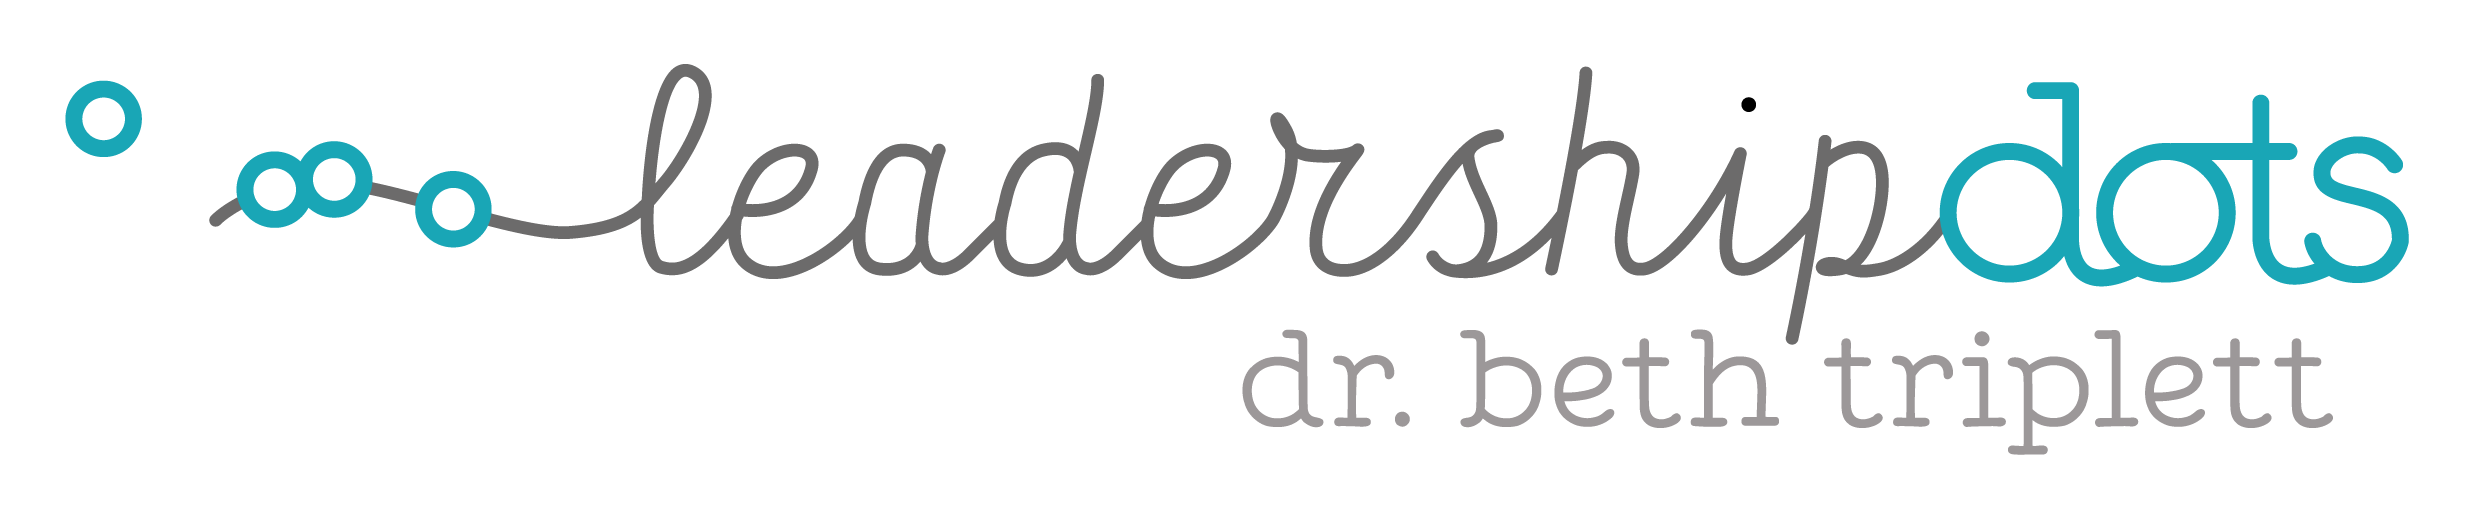 leadership dots by dr. beth triplett